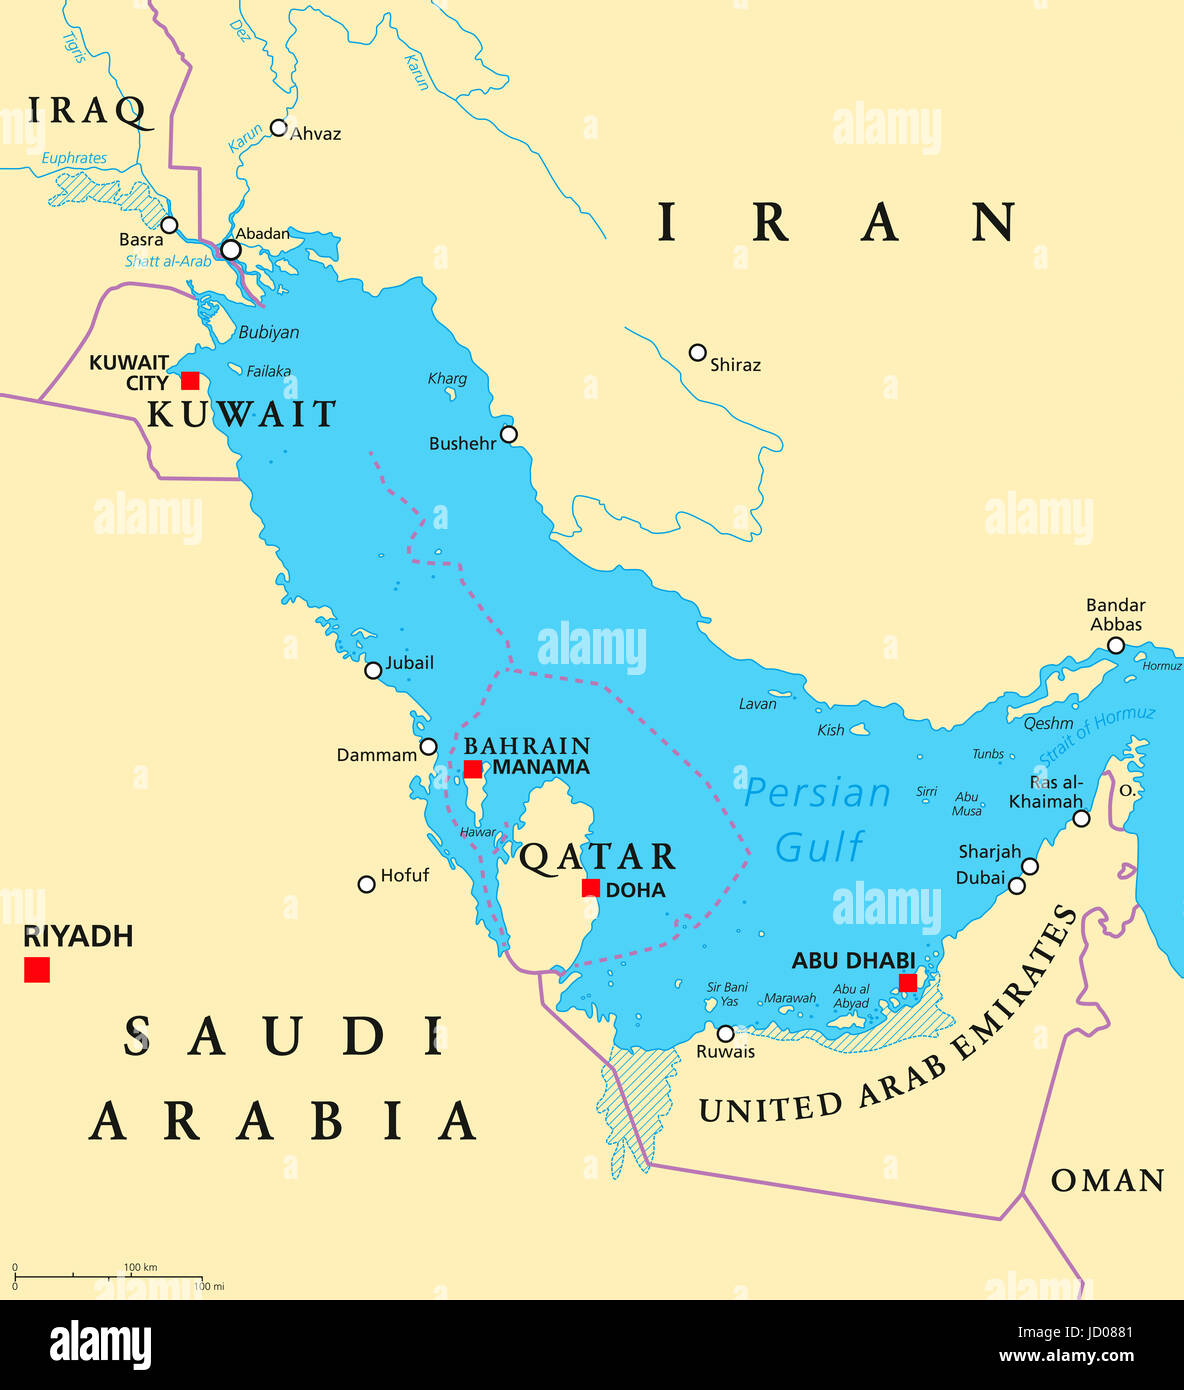 persian gulf region countries political map iran iraq kuwait qatar bahrain united arab emirates saudi arabia oman illustration english